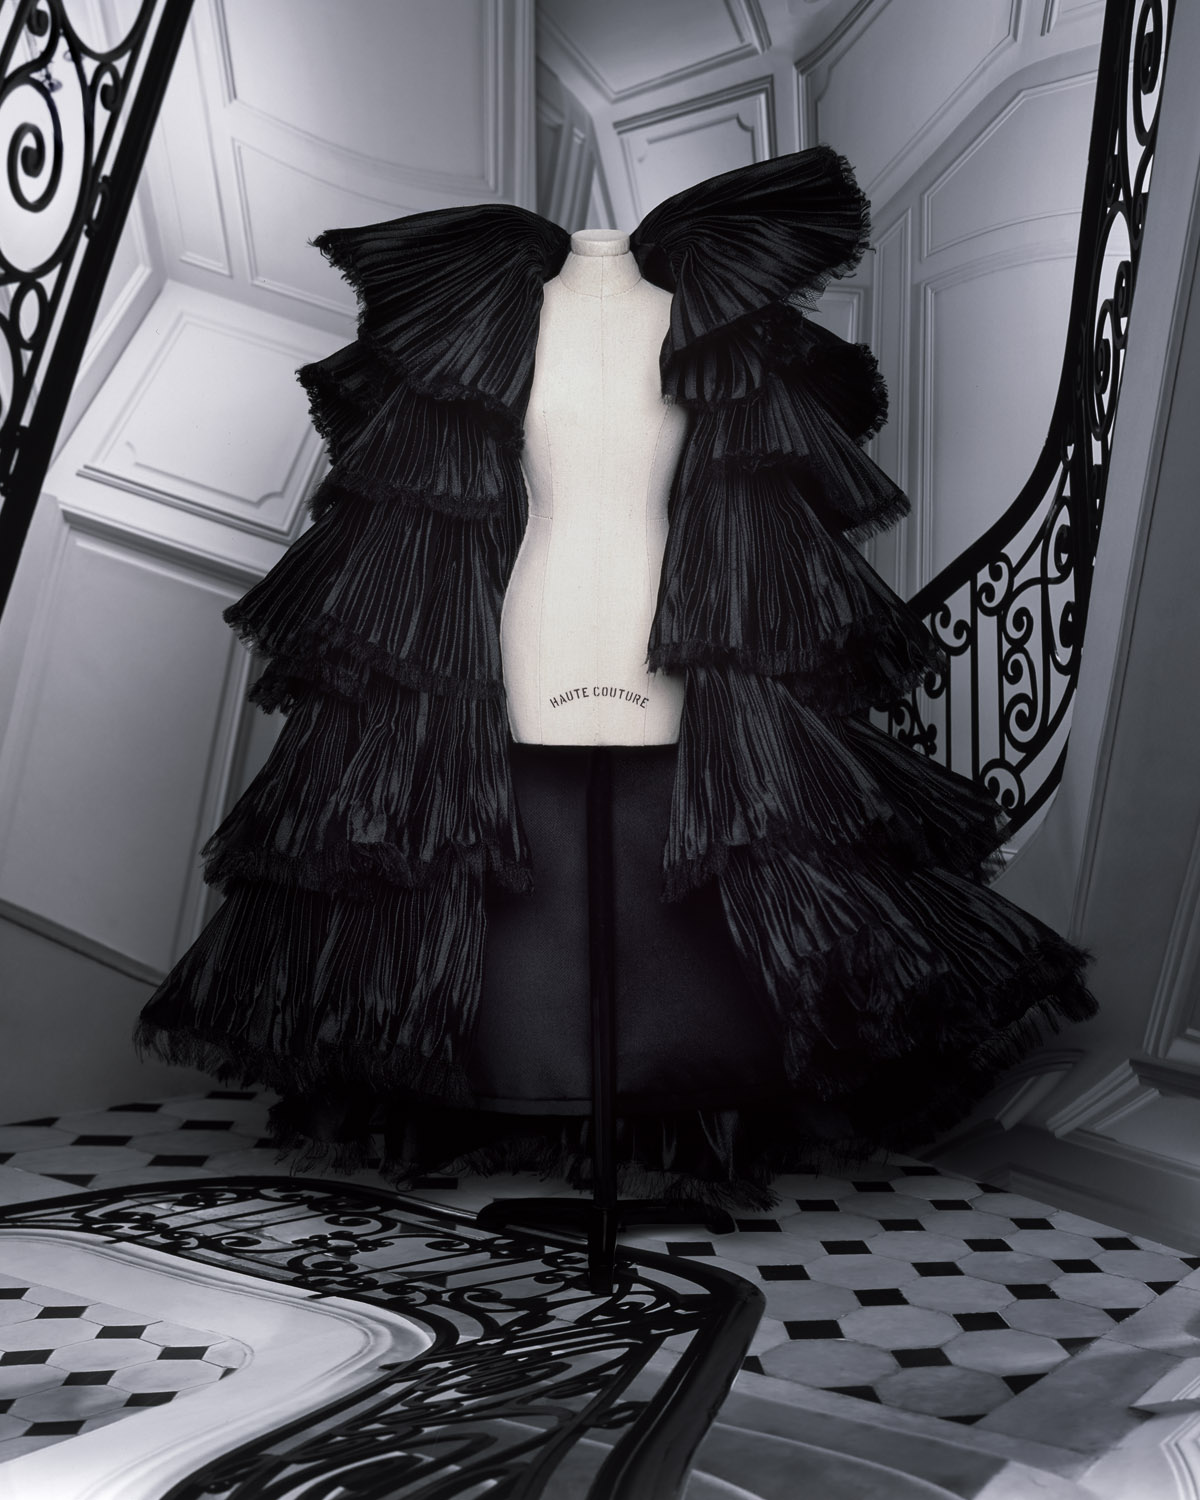 Dior is delving deep into a dream for Haute Couture '21 (фото 5)